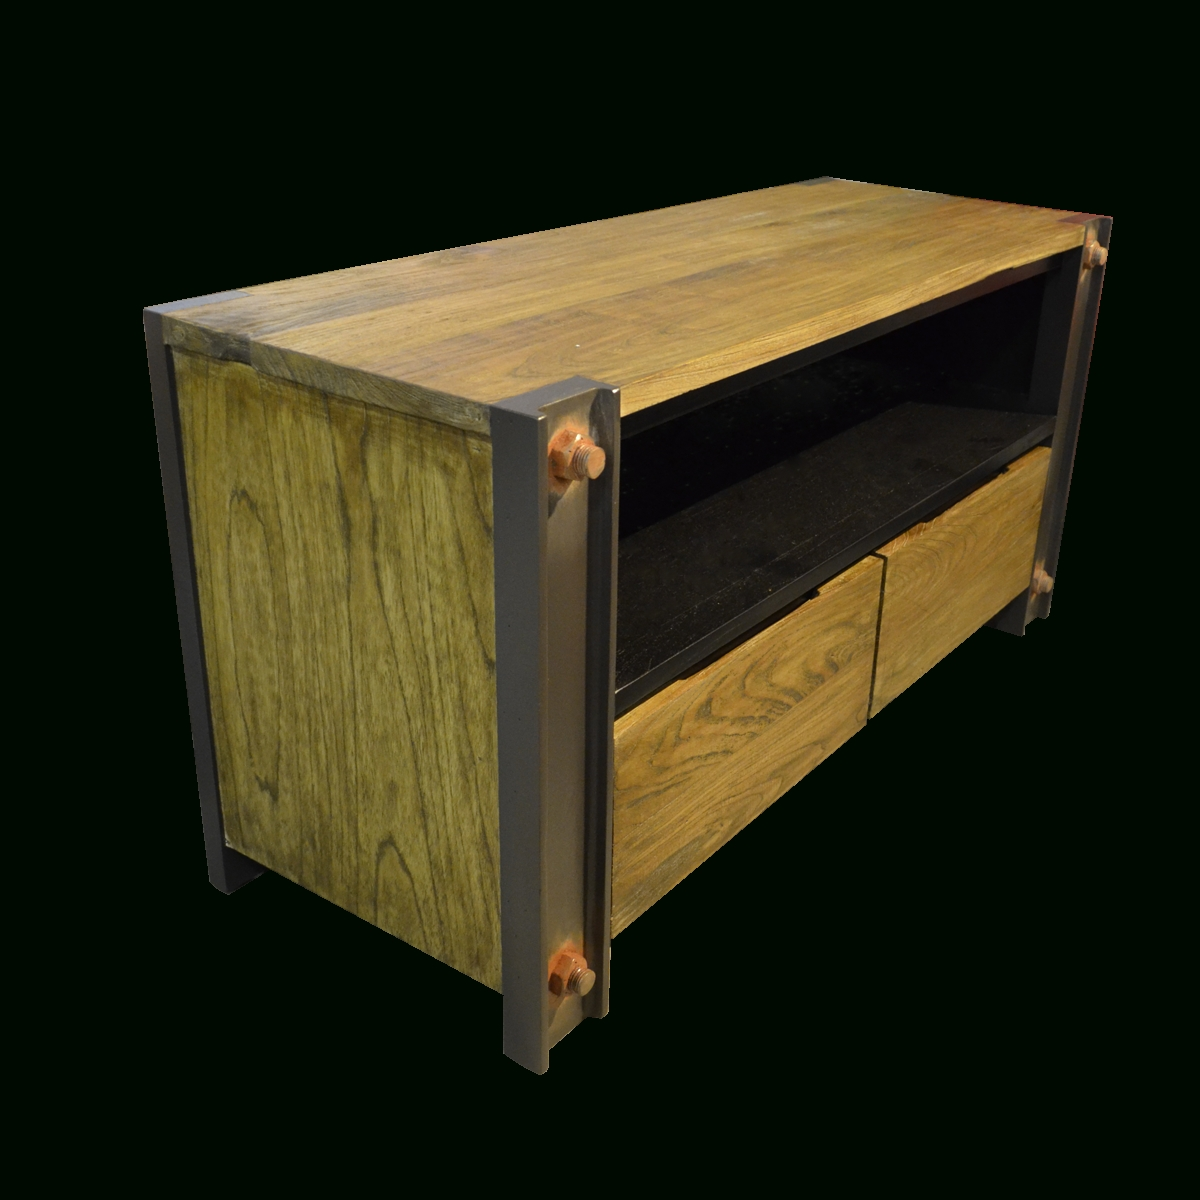 Industrial Tv Cabinet – Hanks | Furniture & Home Décor | Fortytwo In Industrial Tv Cabinets (View 12 of 20)